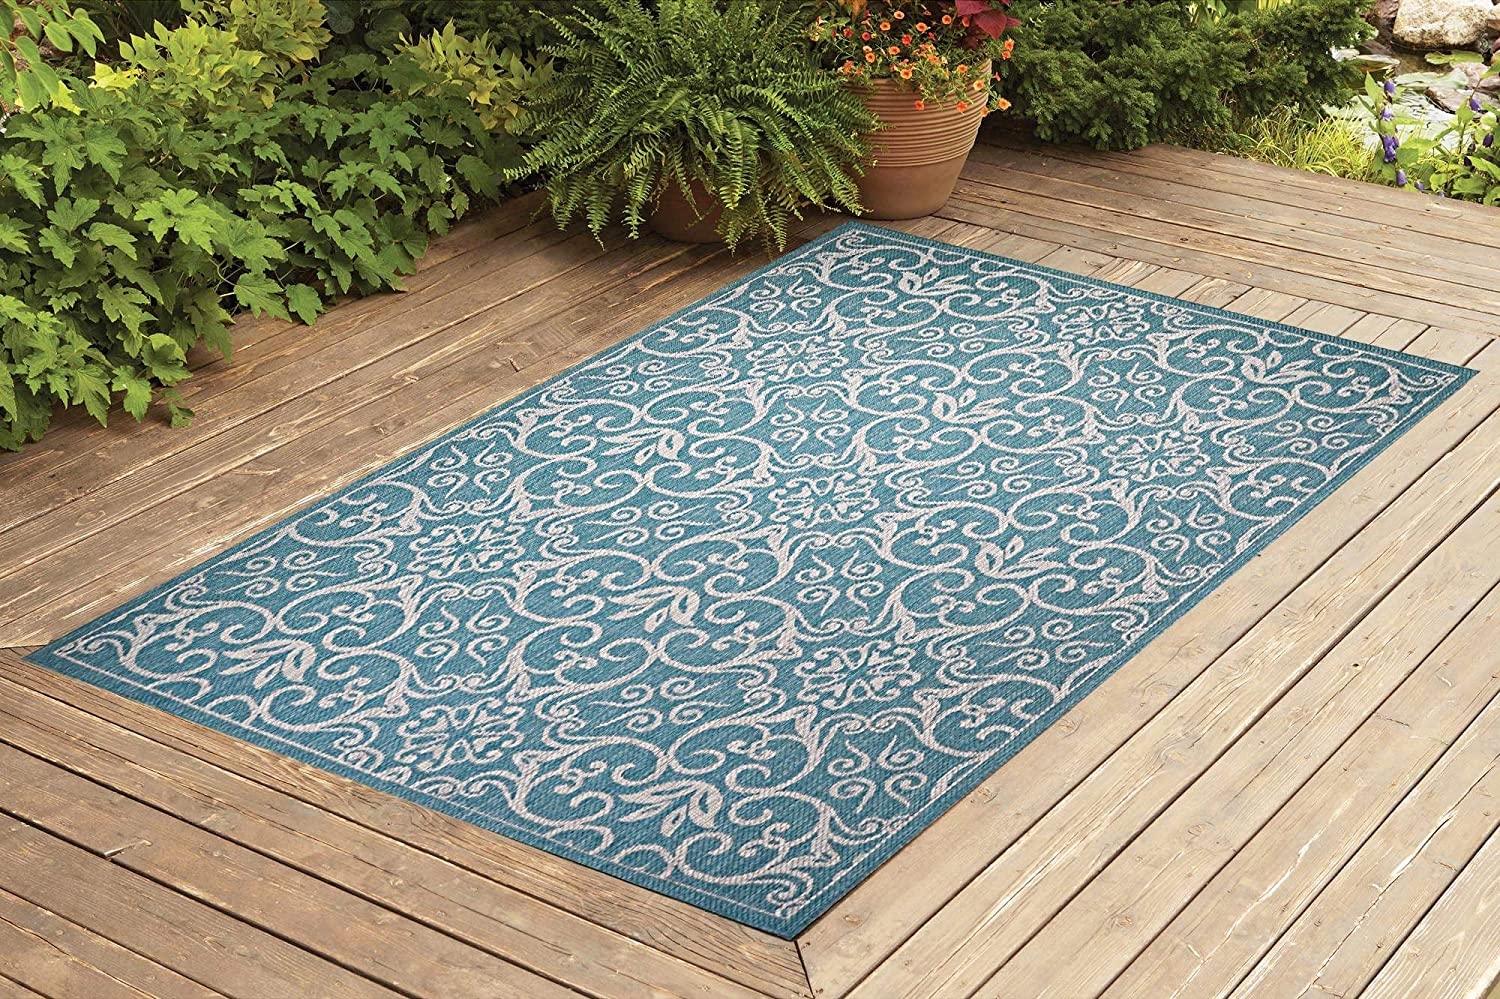 Benissimo Indoor Outdoor Rug Rams Horn Collection, Natural Sisal Woven and Jute Backing Area Rugs for Living Room, Bedroom, Kitchen, Entryway, Hallway, Patio, Farmhouse Decor 8x10, Turquoise